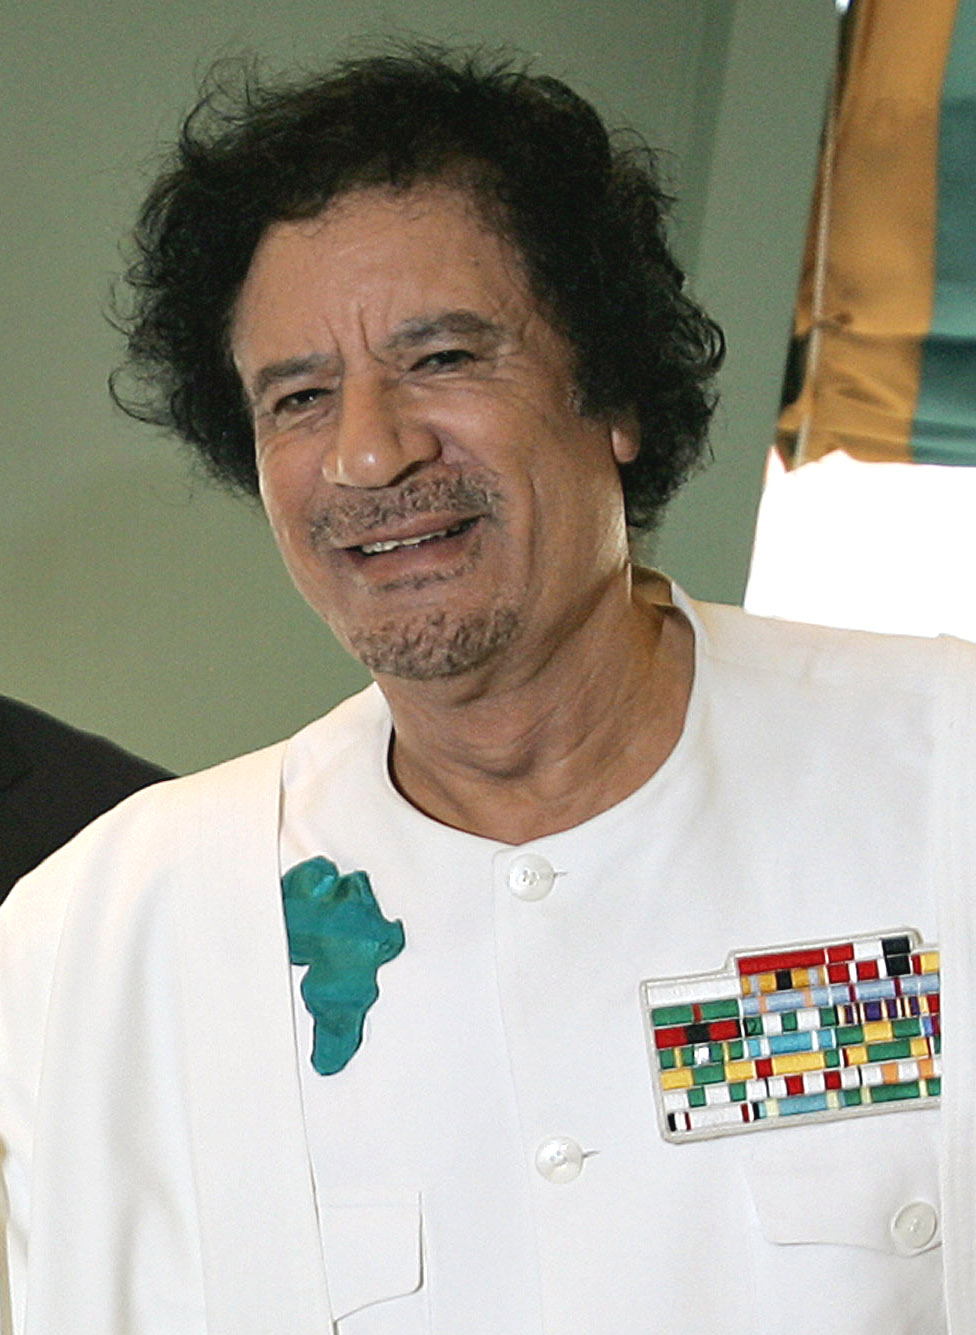 muammar gaddafi The case came about after investigators used phone-taps to examine allegations  that late libyan leader muammar gaddafi funded sarkozy's.